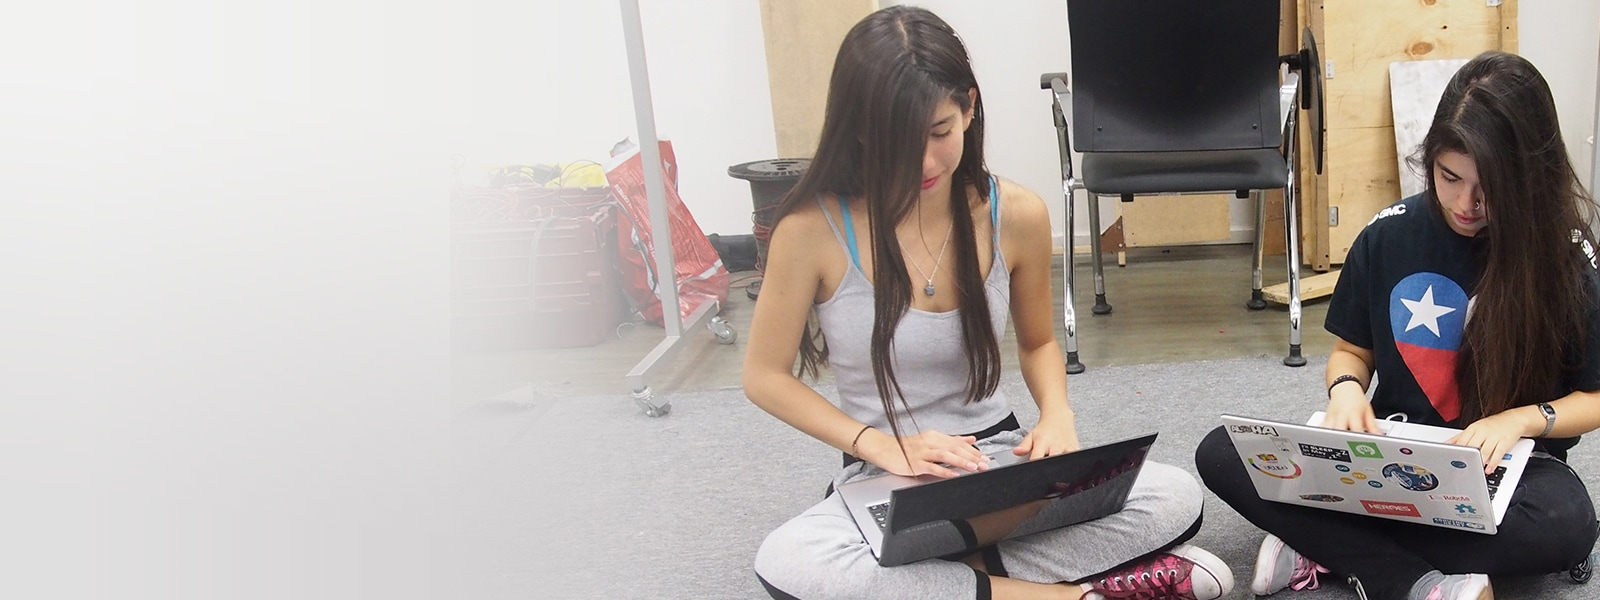 Two female students sitting cross-legged on the floor and working on laptops in a CS class